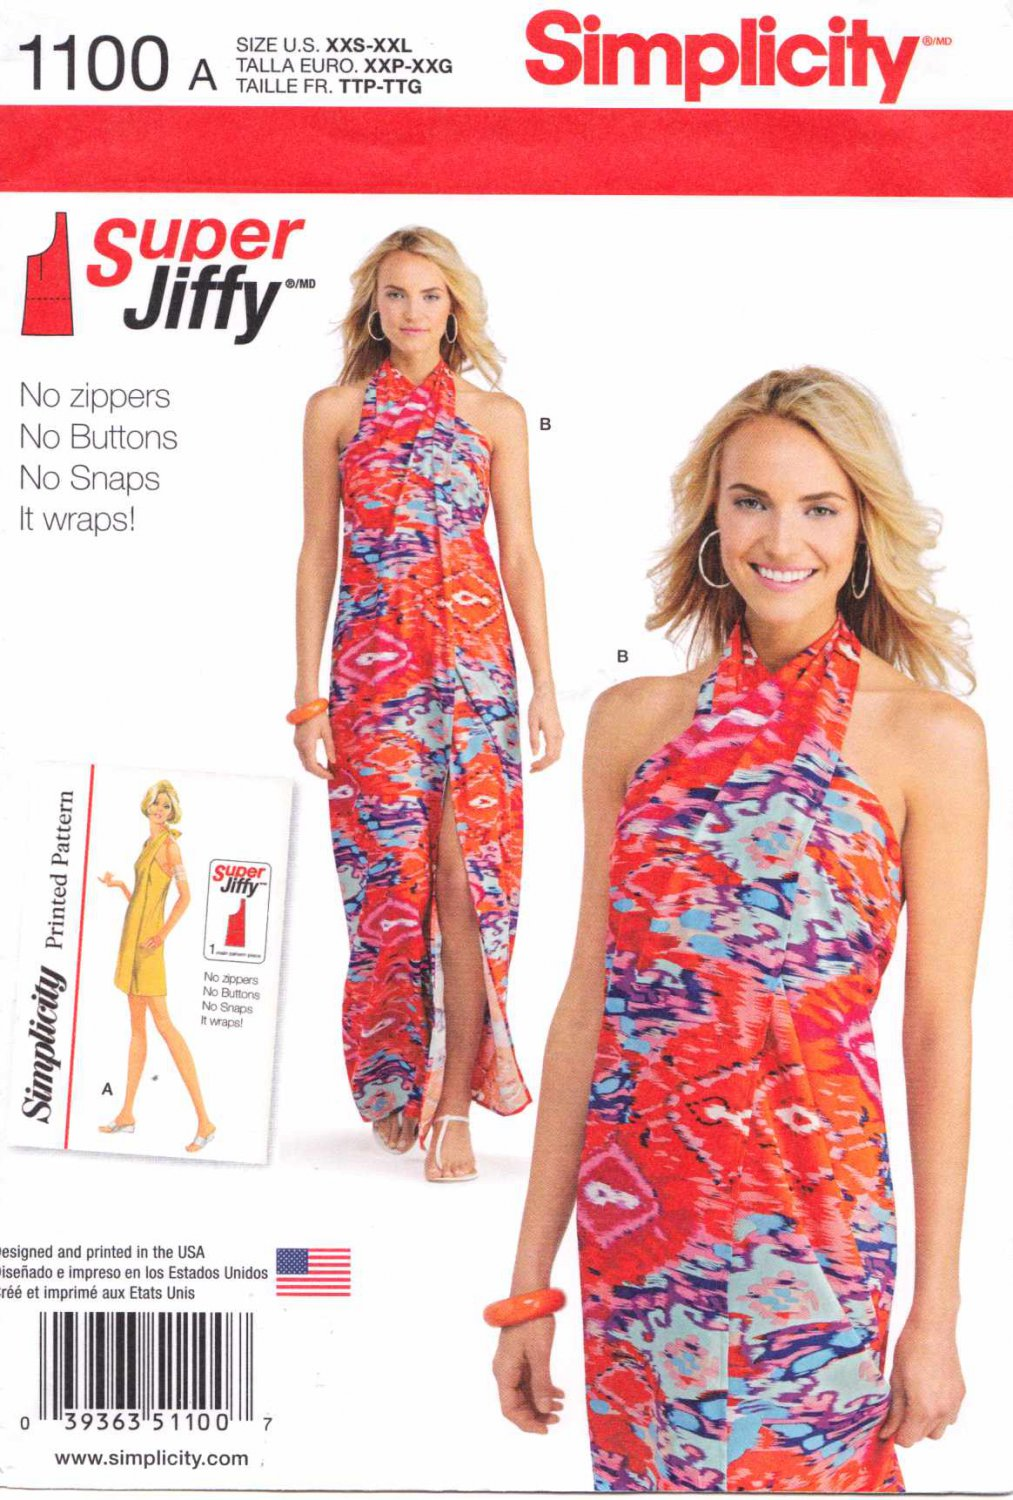 Simplicity Sewing Pattern 1100 Misses Sizes 4-26 Vintage Style Jiffy Beach Cover Up Halter Dress